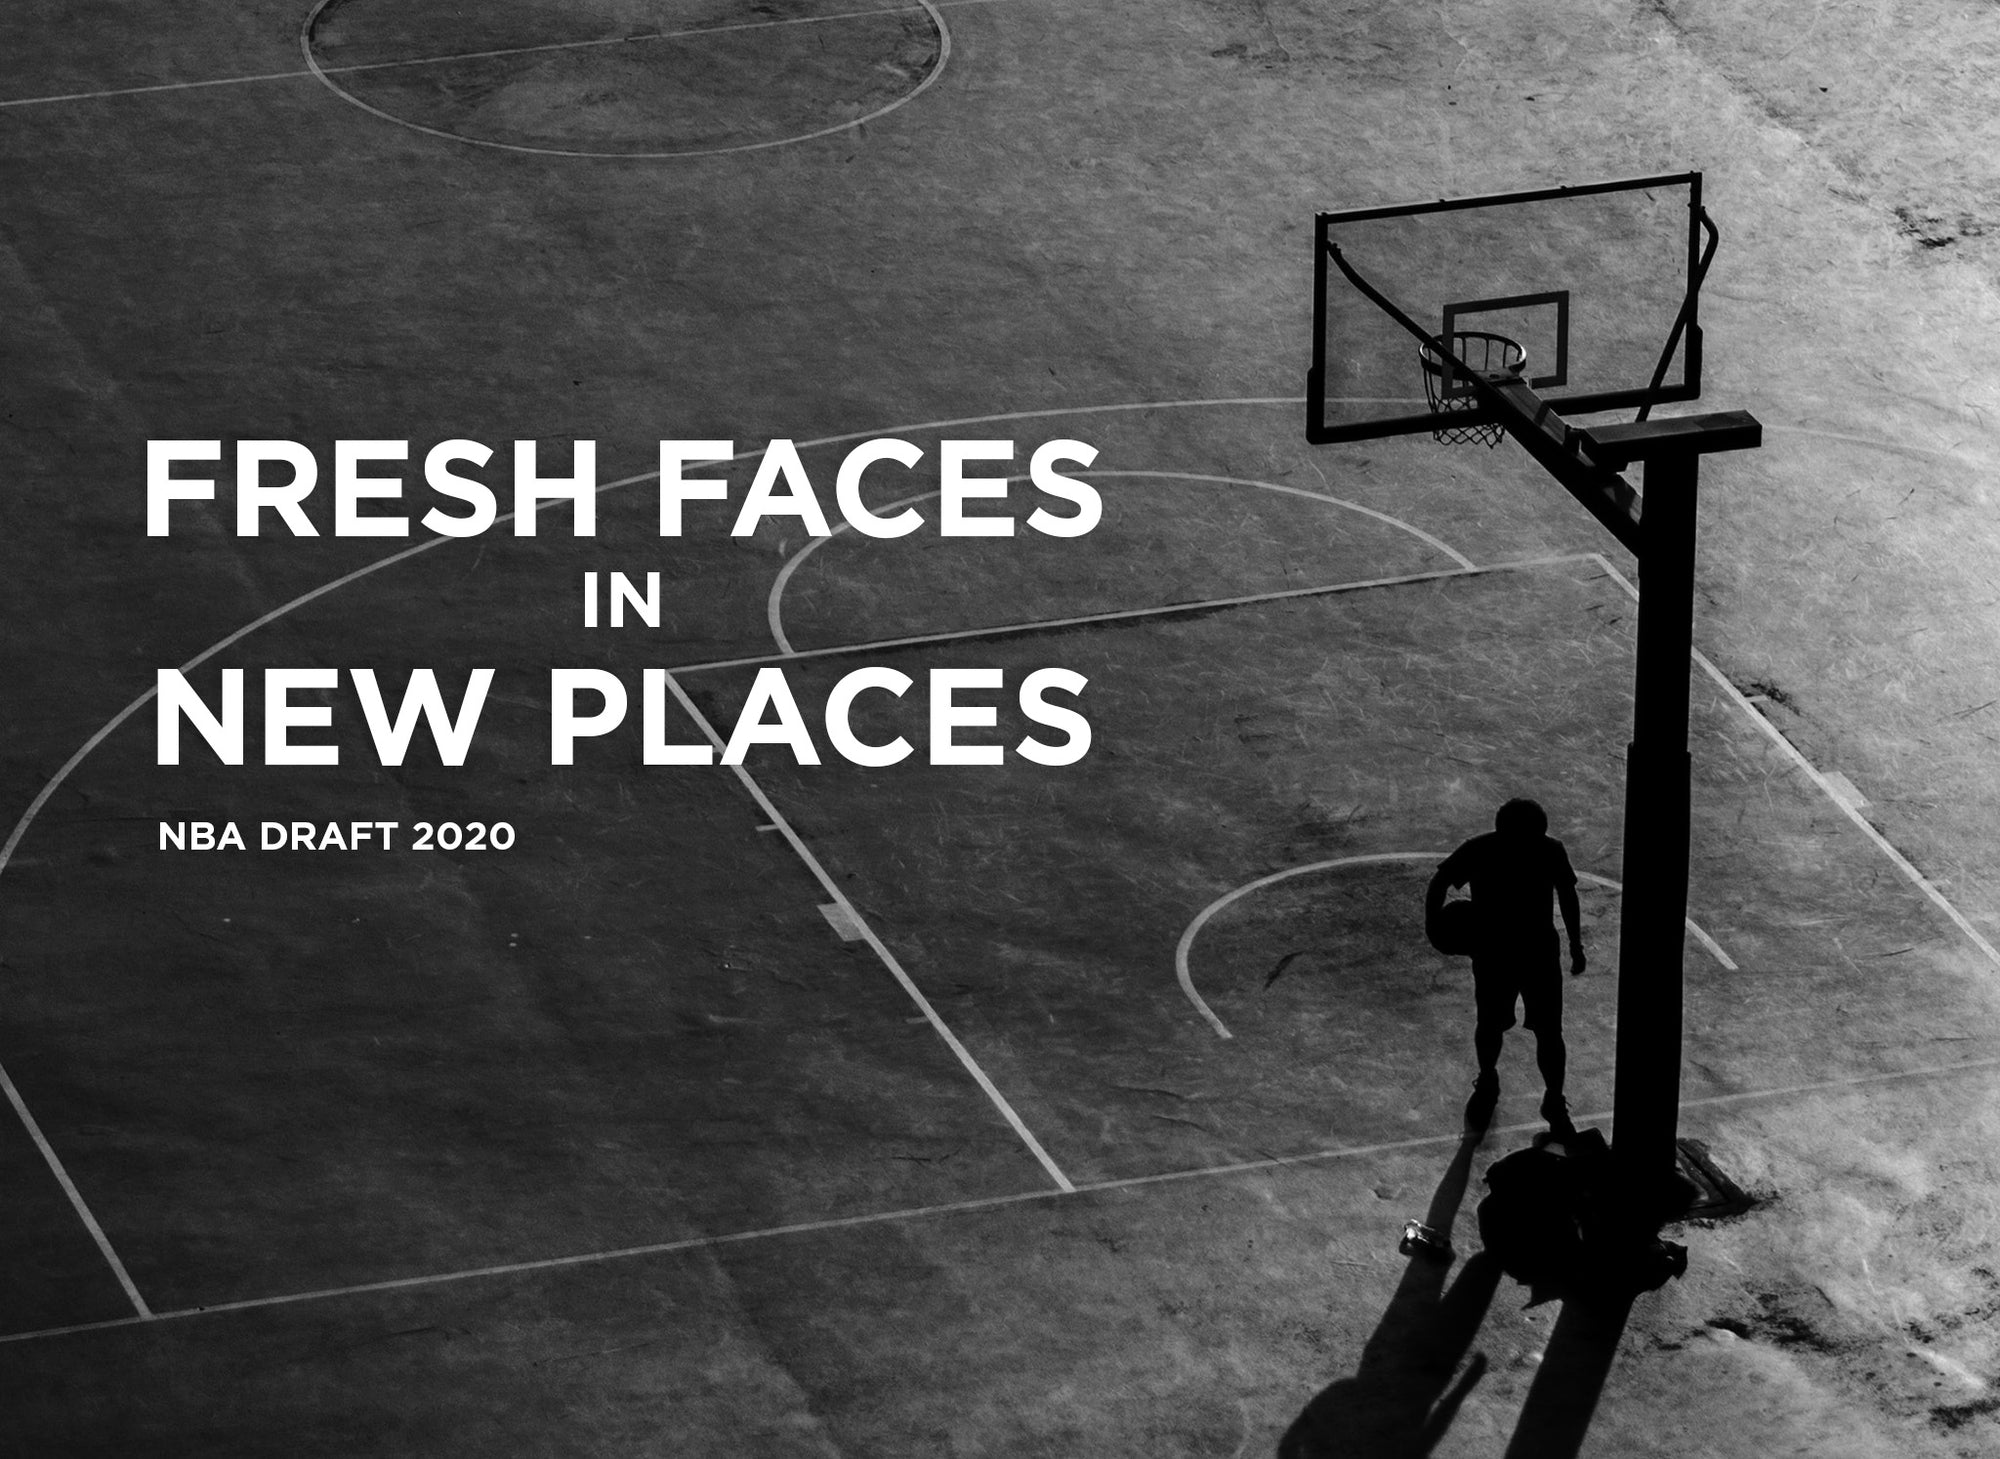 Fresh Faces in New Places